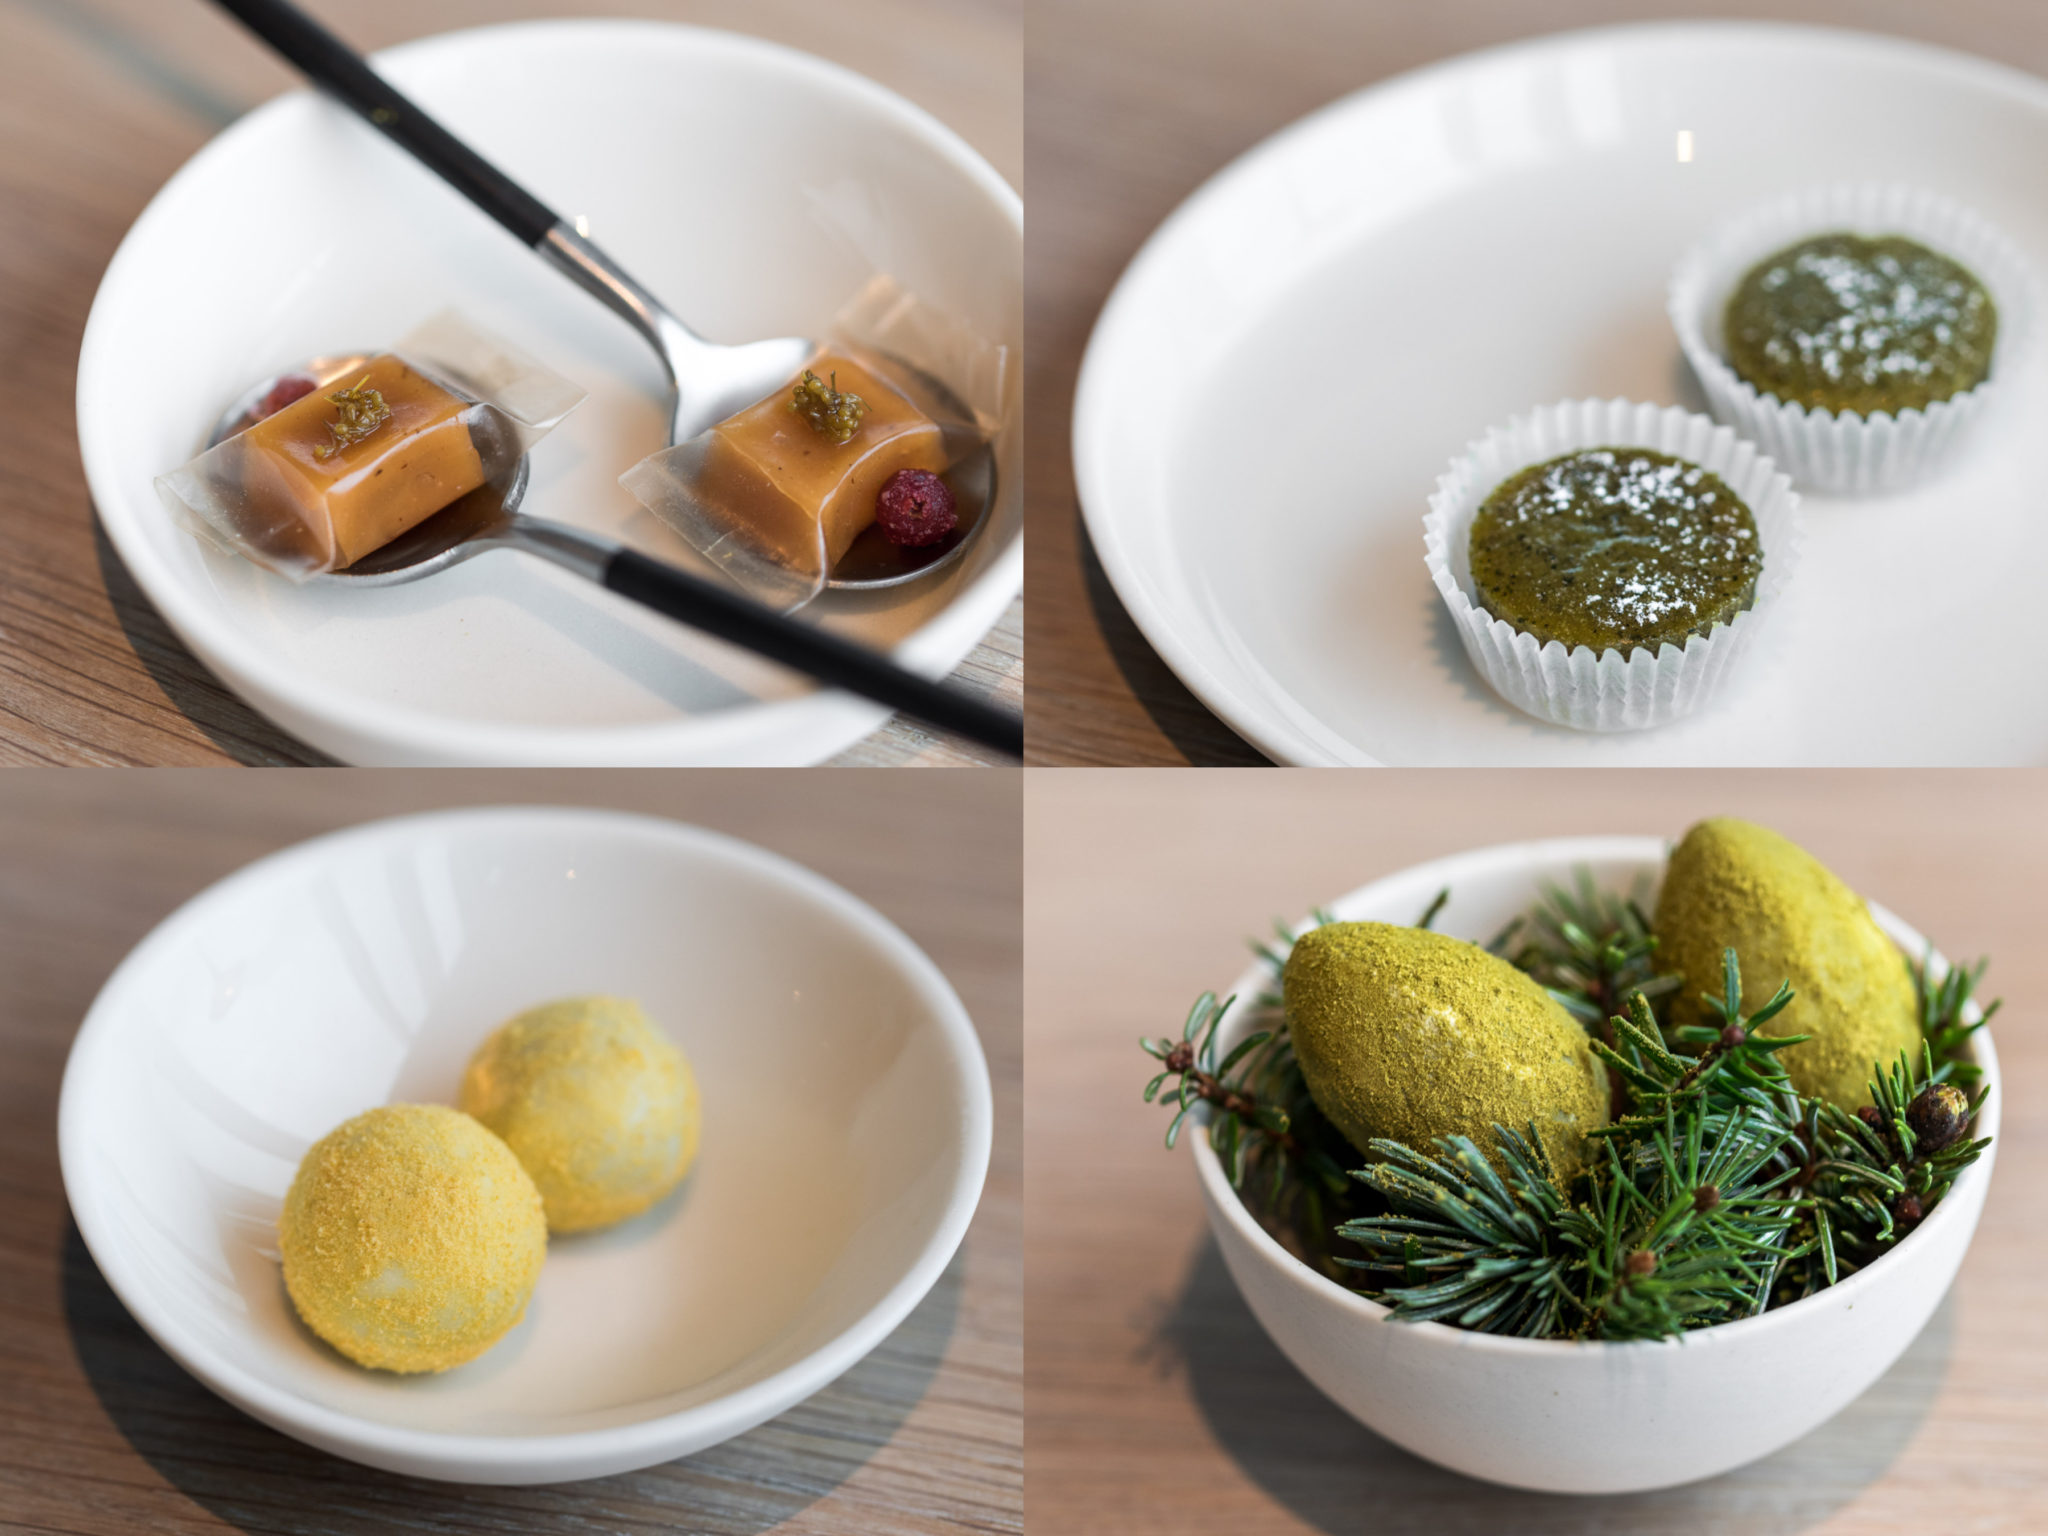 Caramel, Cake with pumpkin seed oil, Chocolate with oats & sea buckthorn, Green egg with pine